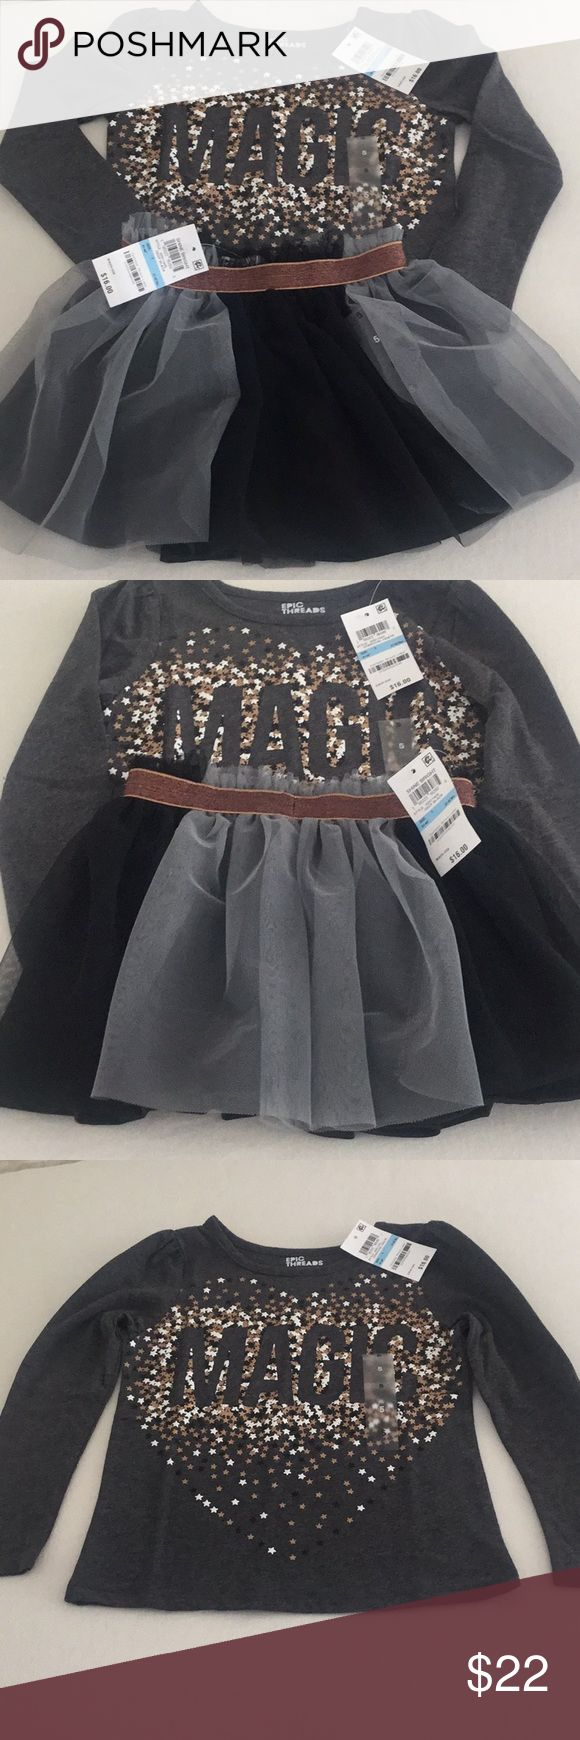 """Epic Threads Girls 2pc tulle skirt set Size 5 NWT Epic Threads from Macy's Little girls two piece outfit Size 5 Together the retail price is $32.00 Brand new Top spells out """"Magic"""" perfect for a Disney vacation Bundle and save if you have twins - I have two size 5 sets Top is t shirt fabric - long sleeves Bottom is gray and black tulle with a bronze shiny waist and ribbon Skirt is fully lined My home is pet and smoke free  BUNDLE and SAVE! Epic Threads Matching Sets"""